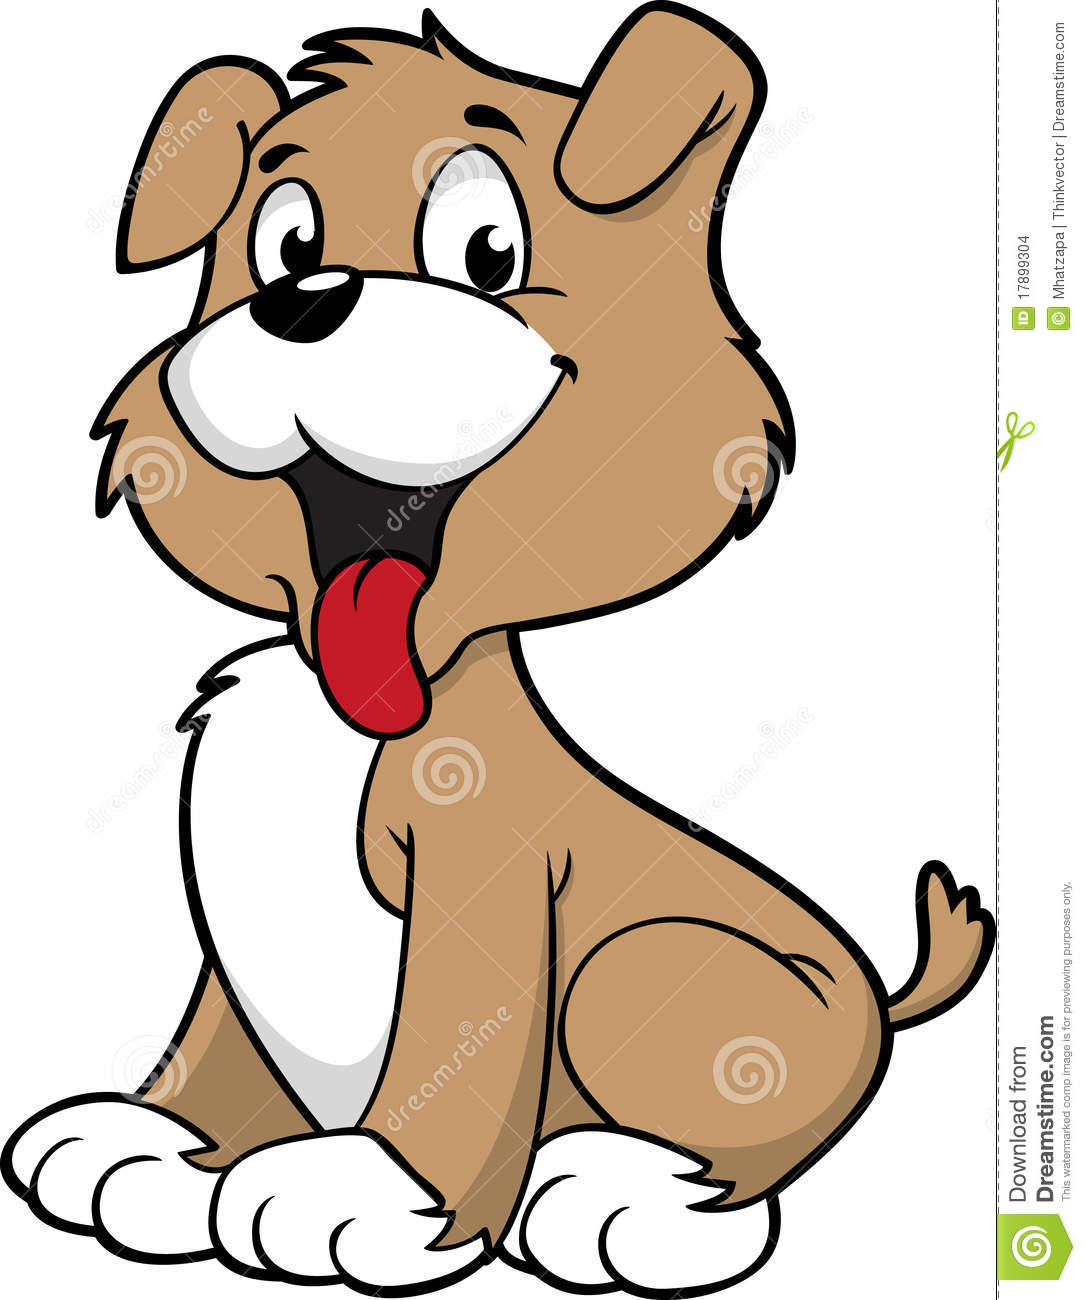 Cute Dog Clip Art | Clipart Panda - Free Clipart Images